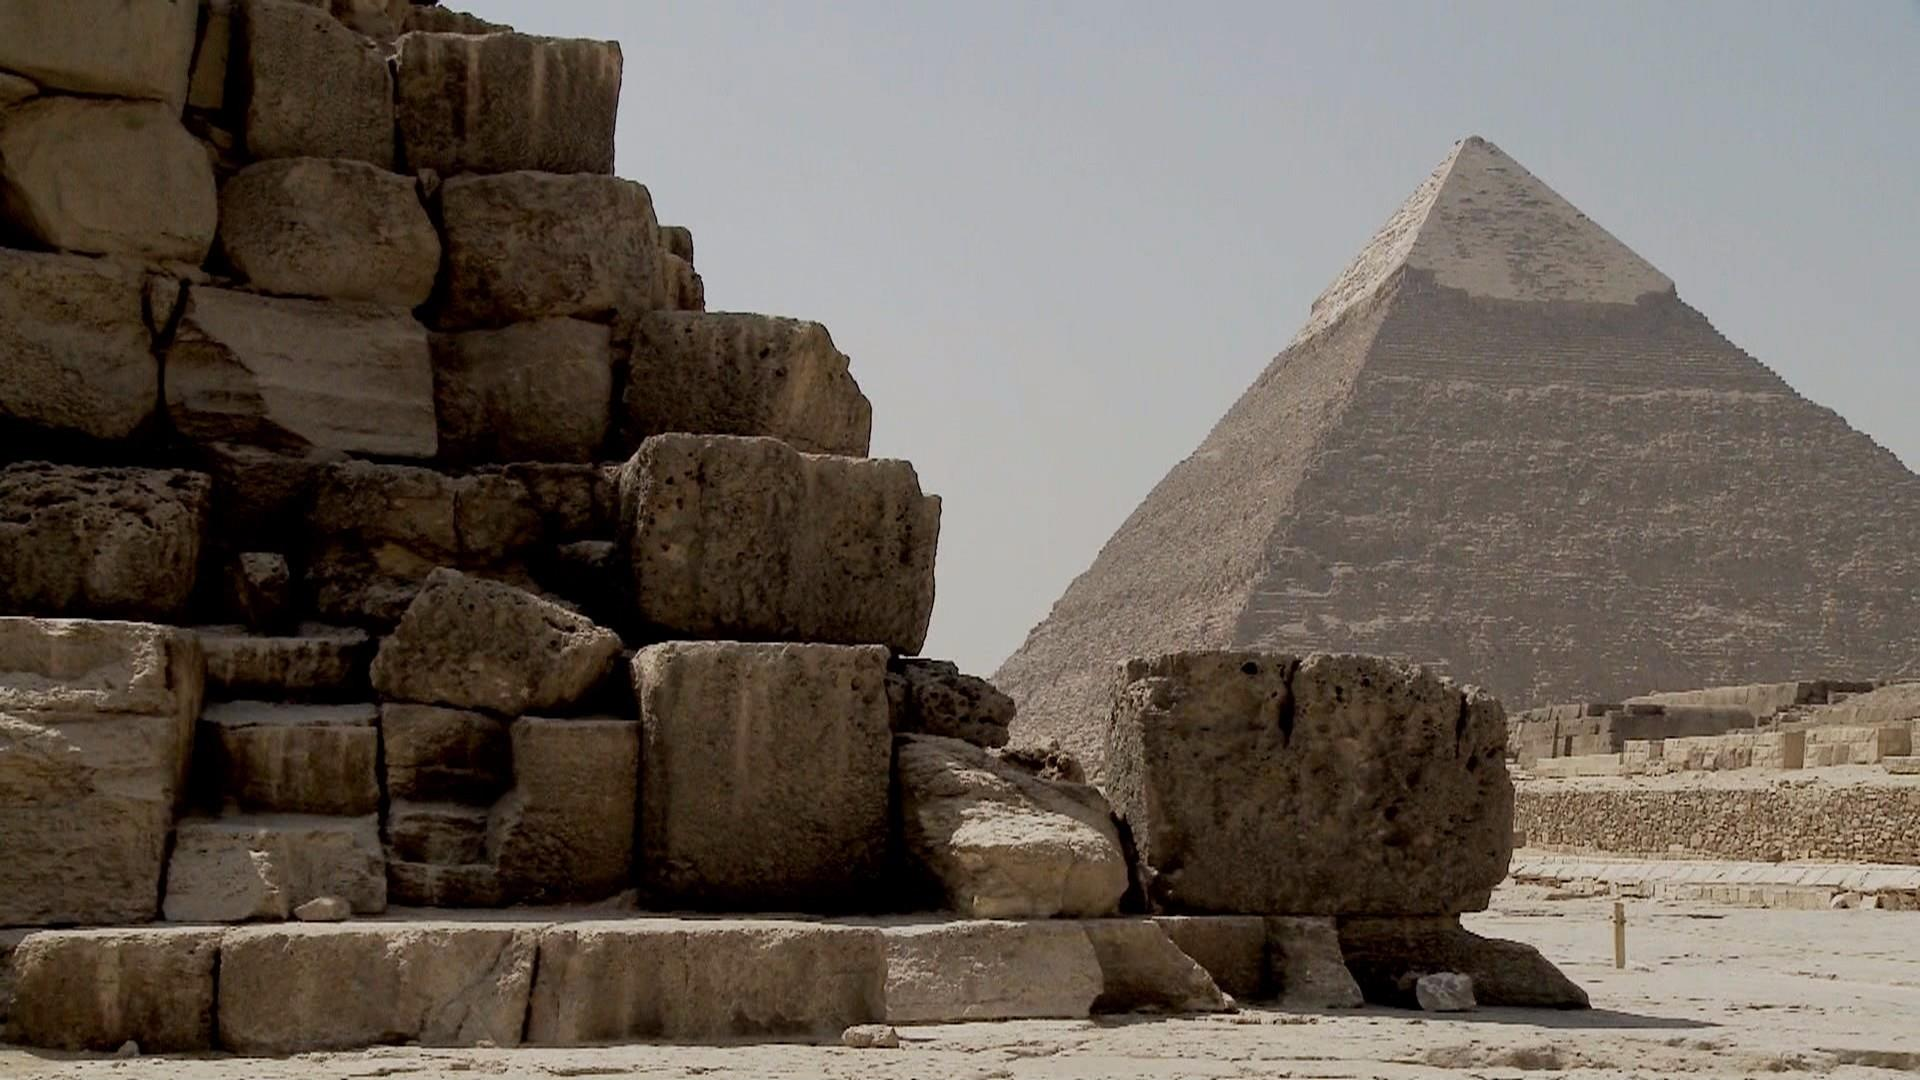 Mysterious 'void' discovered inside Great Pyramid of Giza